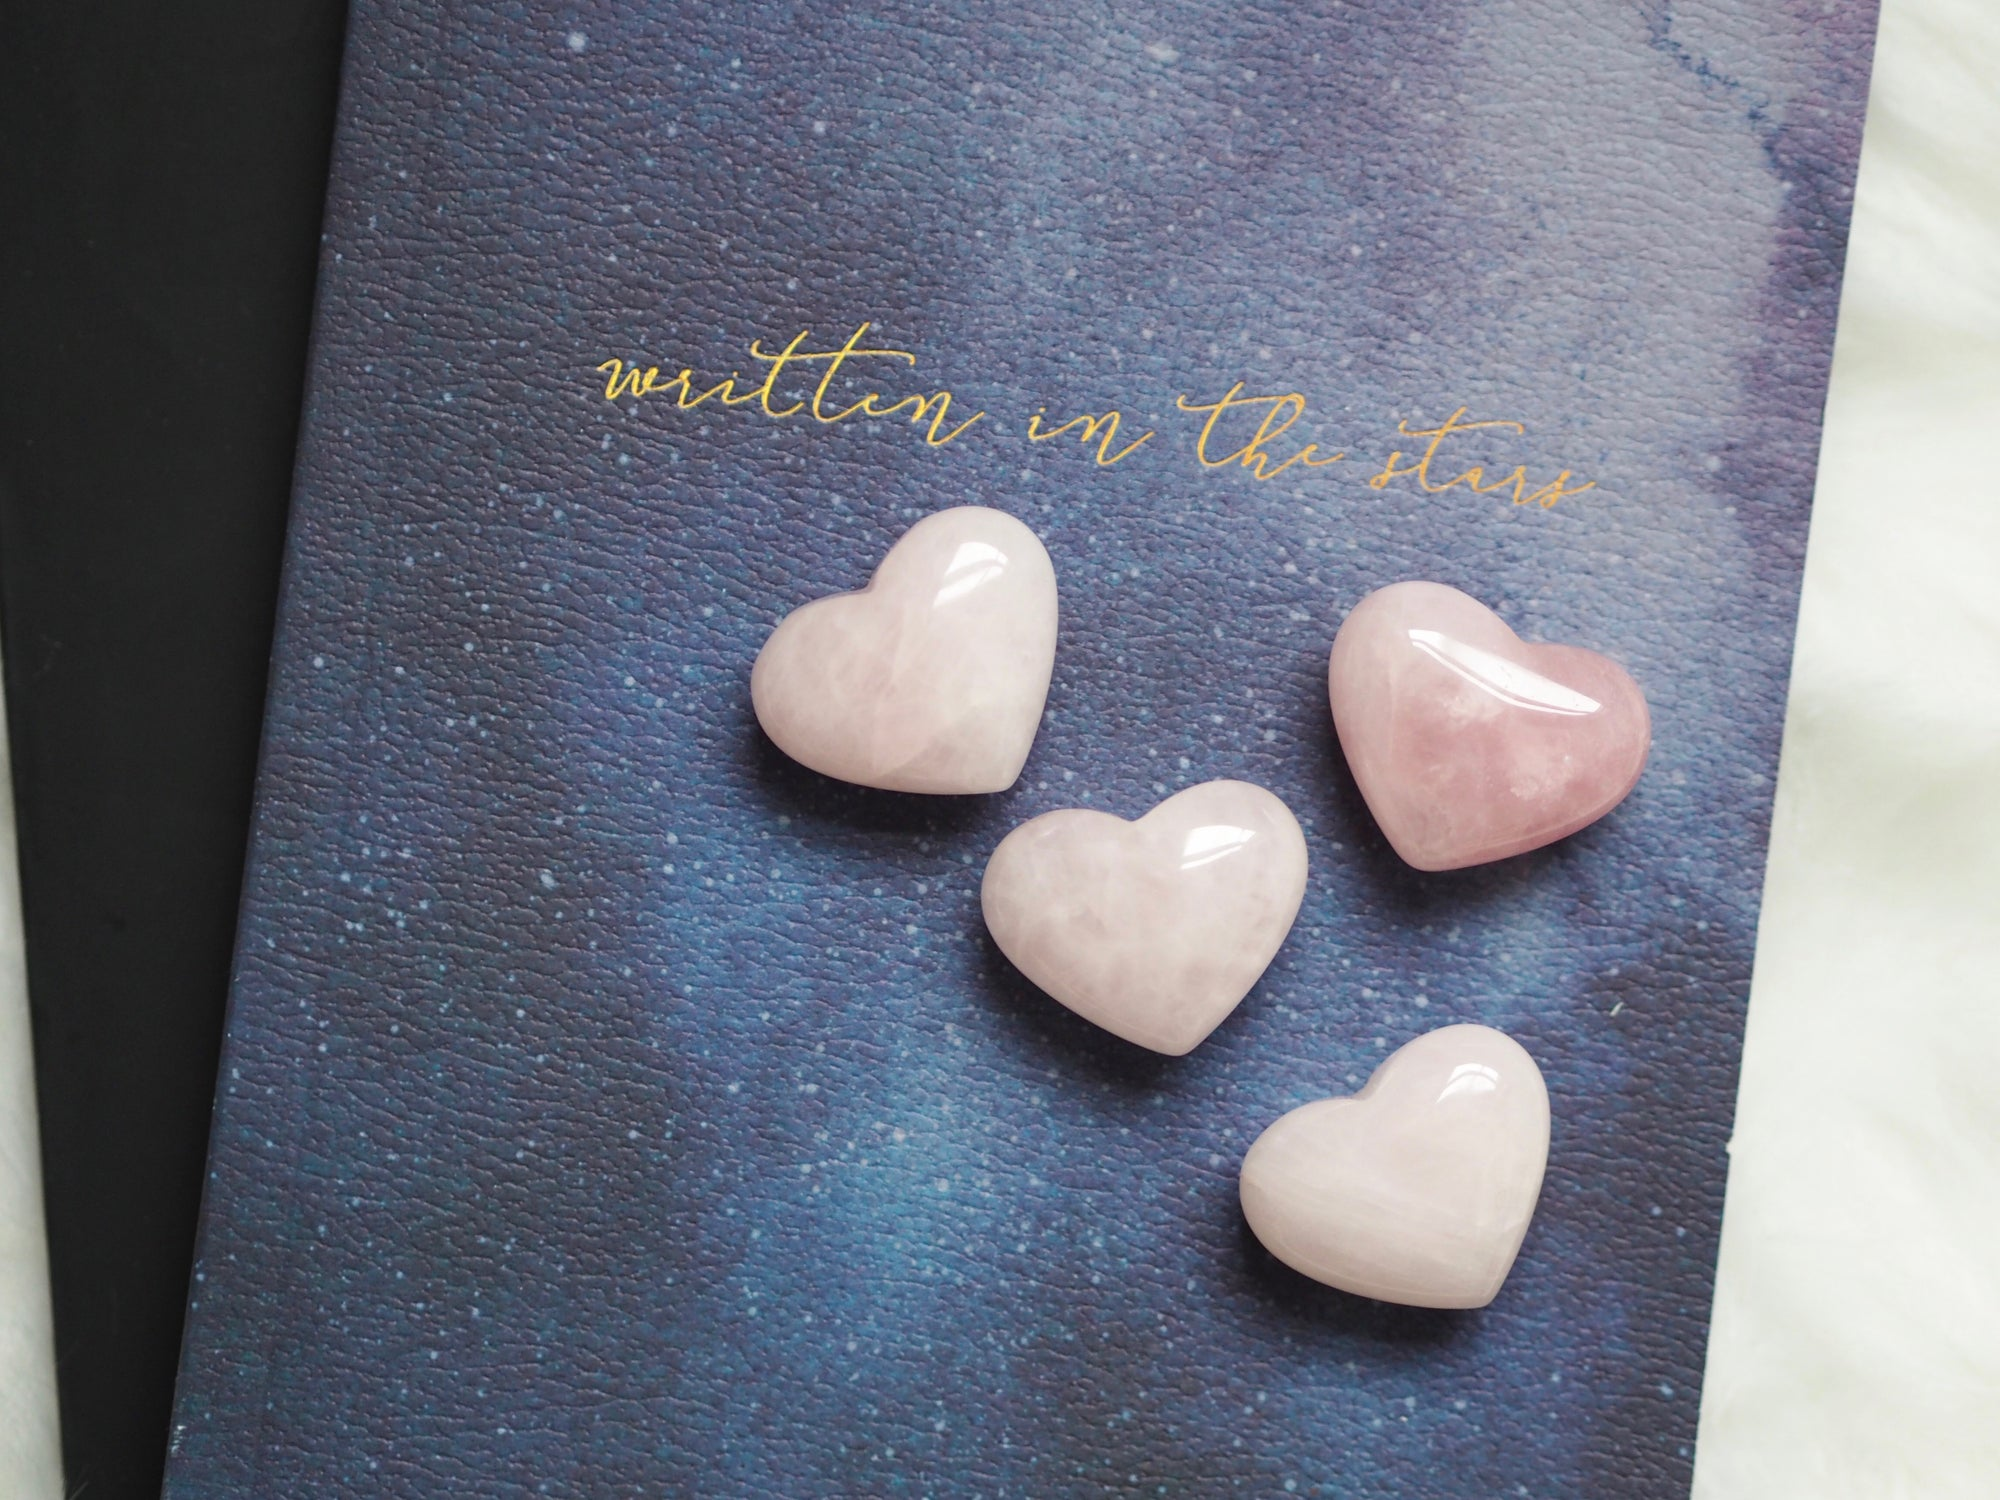 ROSE QUARTZ POLISHED GEMSTONE HEART CARVING | LAWOFATTRACTIONSTORE